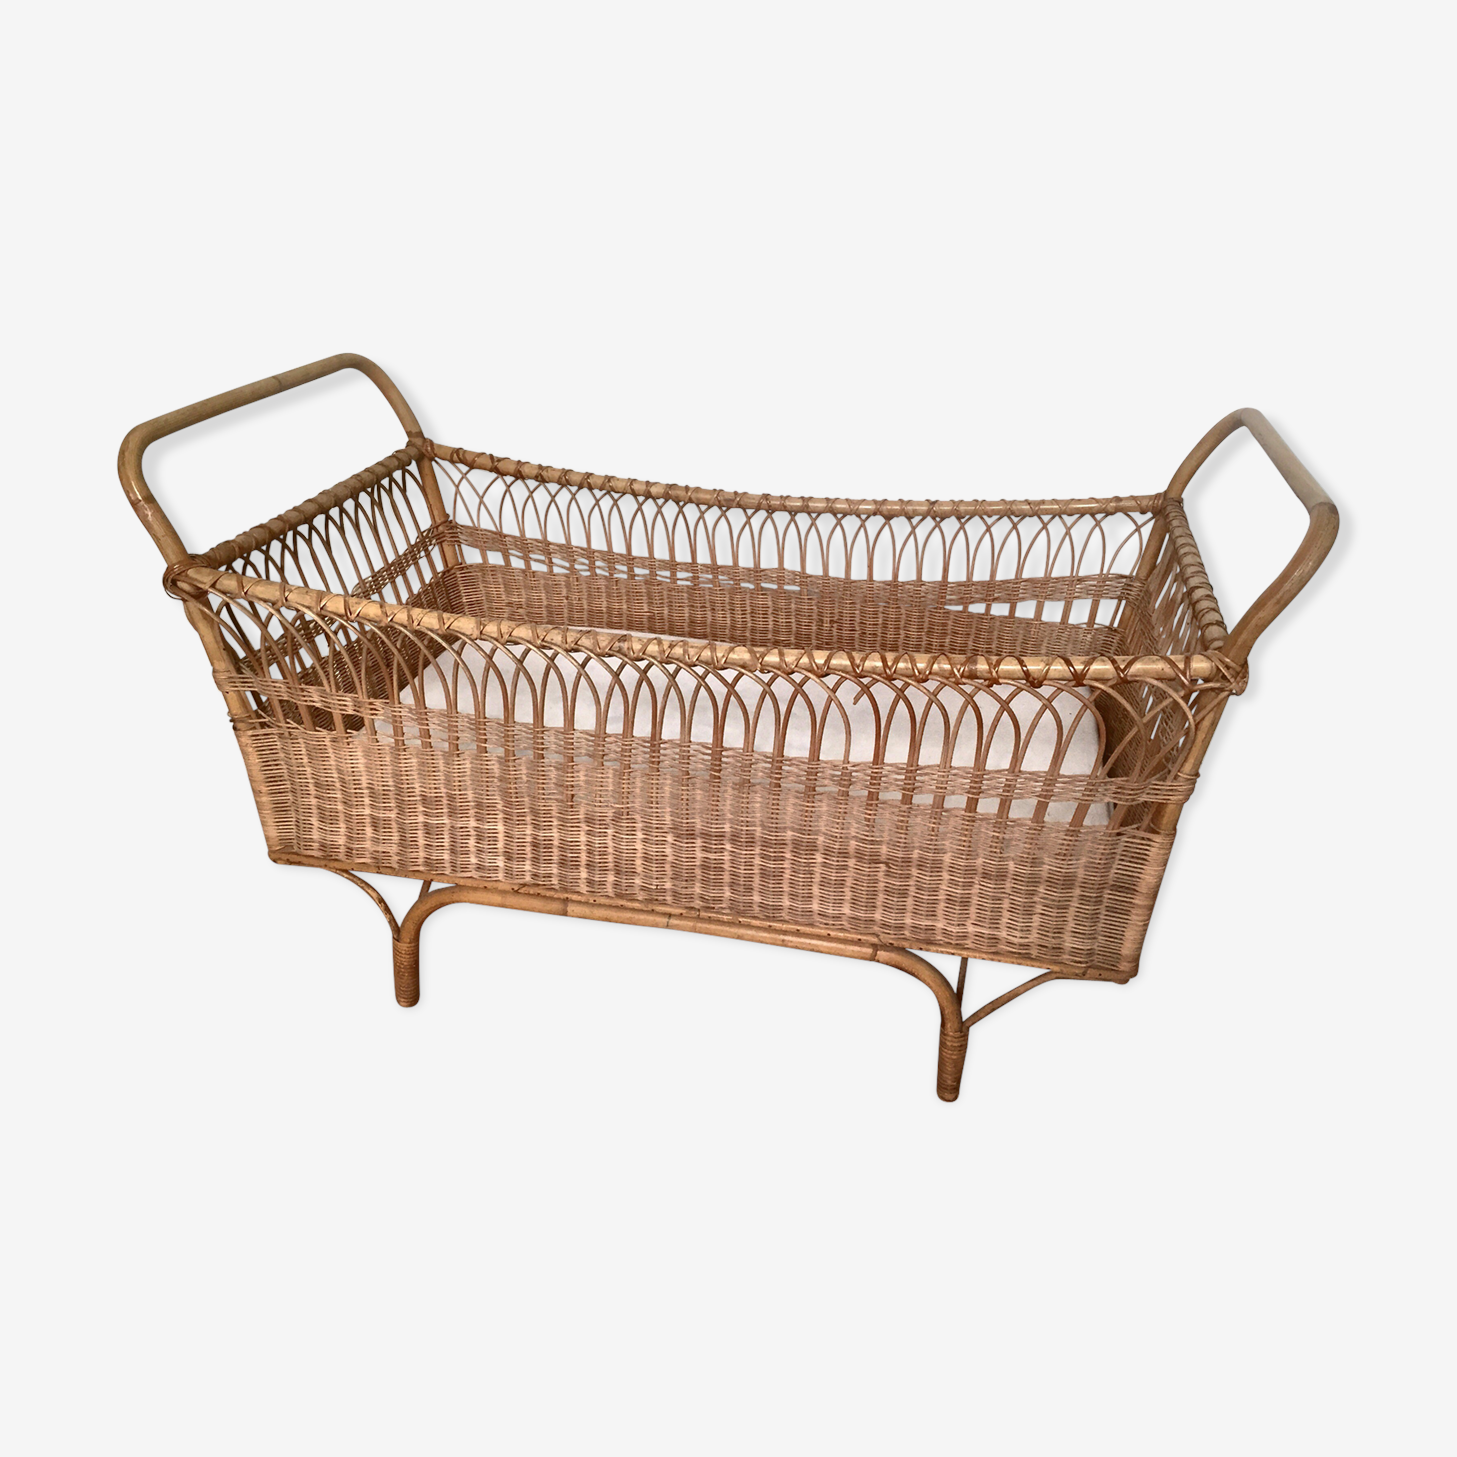 Bed for child with mattress 50/60 year Vintage rattan